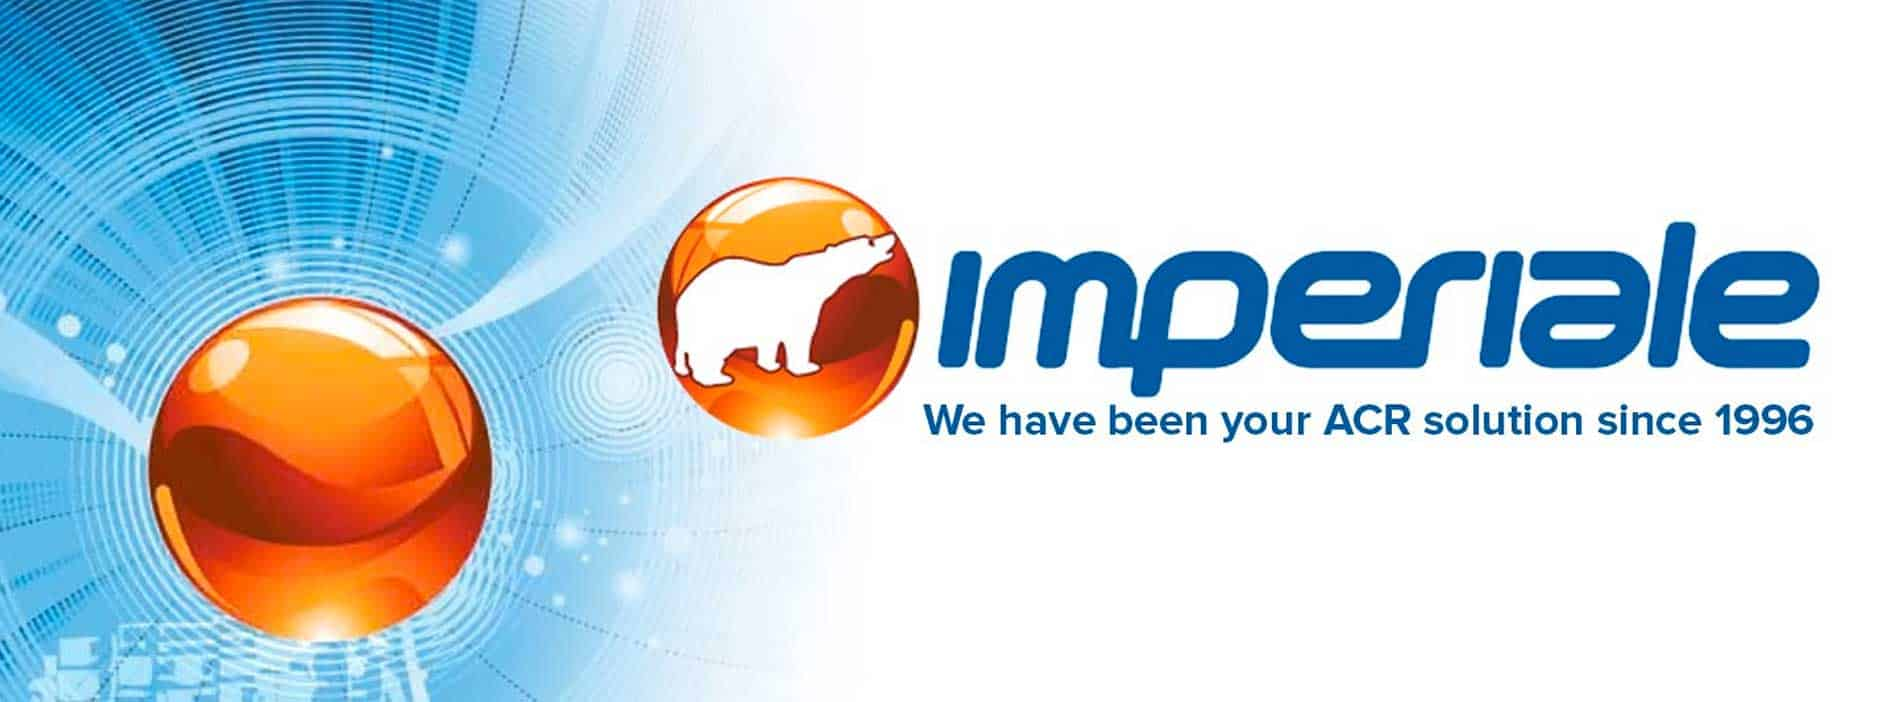 Imperiale Air Conditioning, Refrigeration & Heating